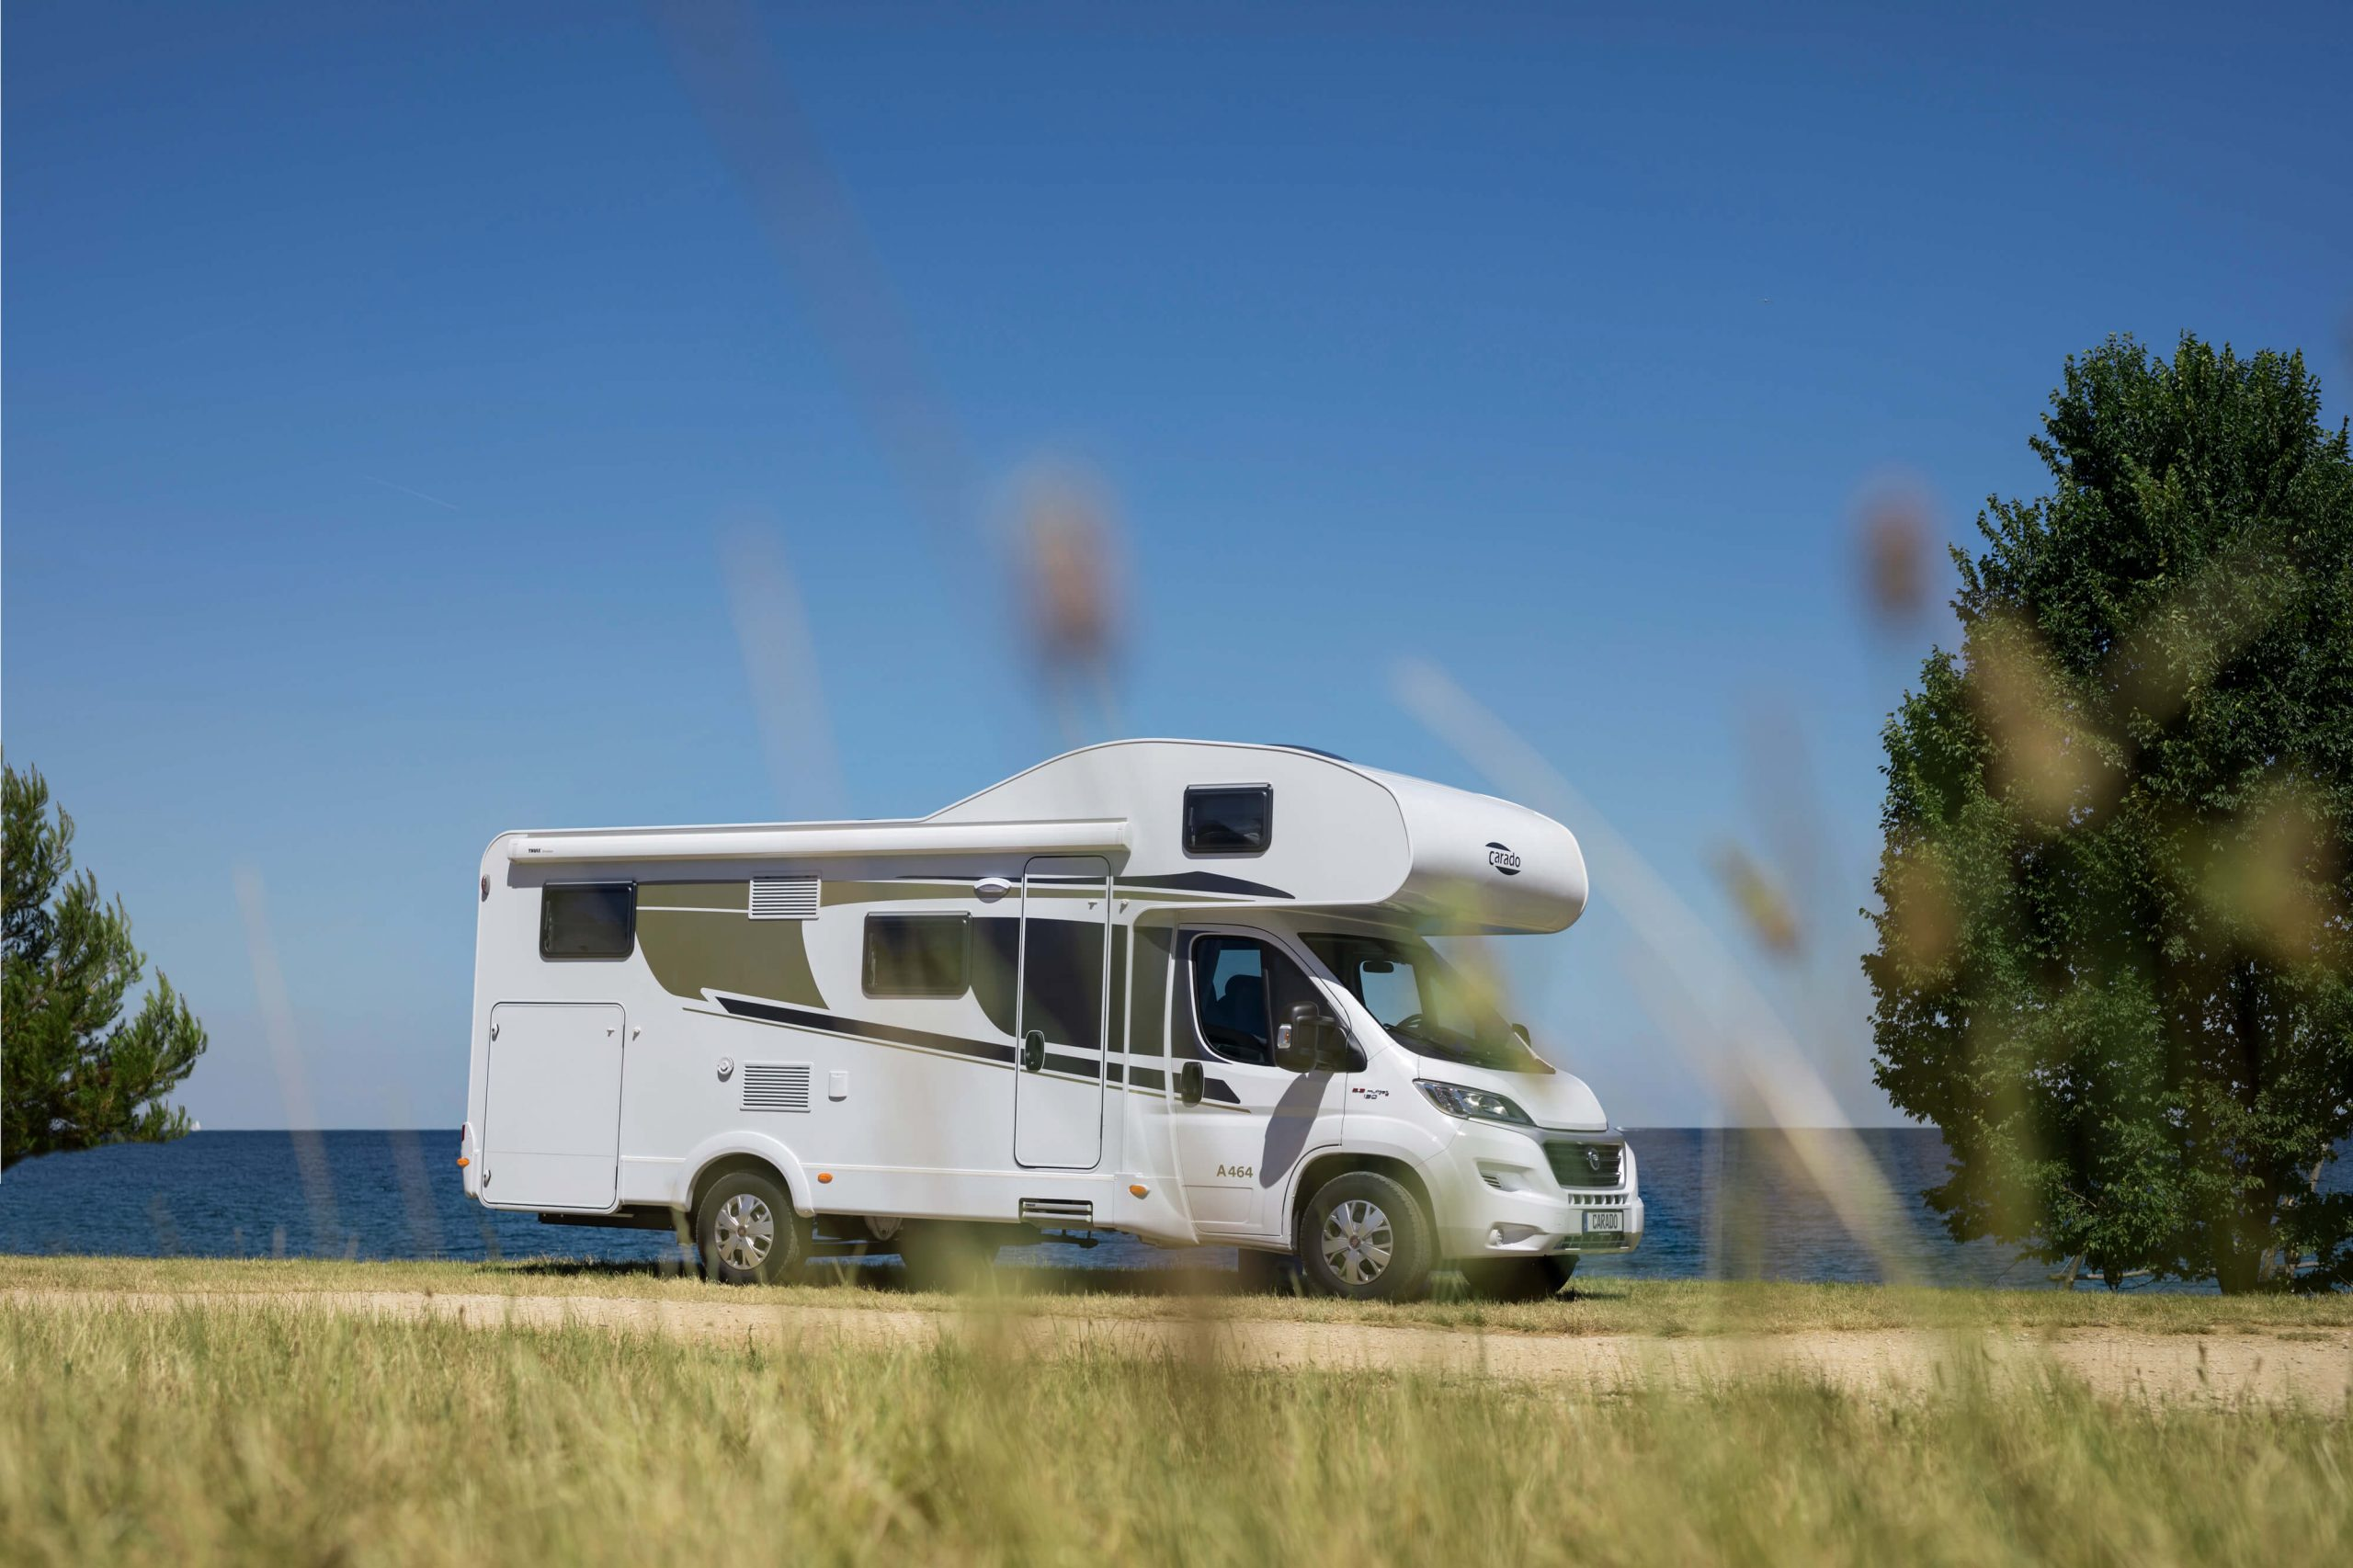 Not Being Aware of the Motorhome Height Limitations